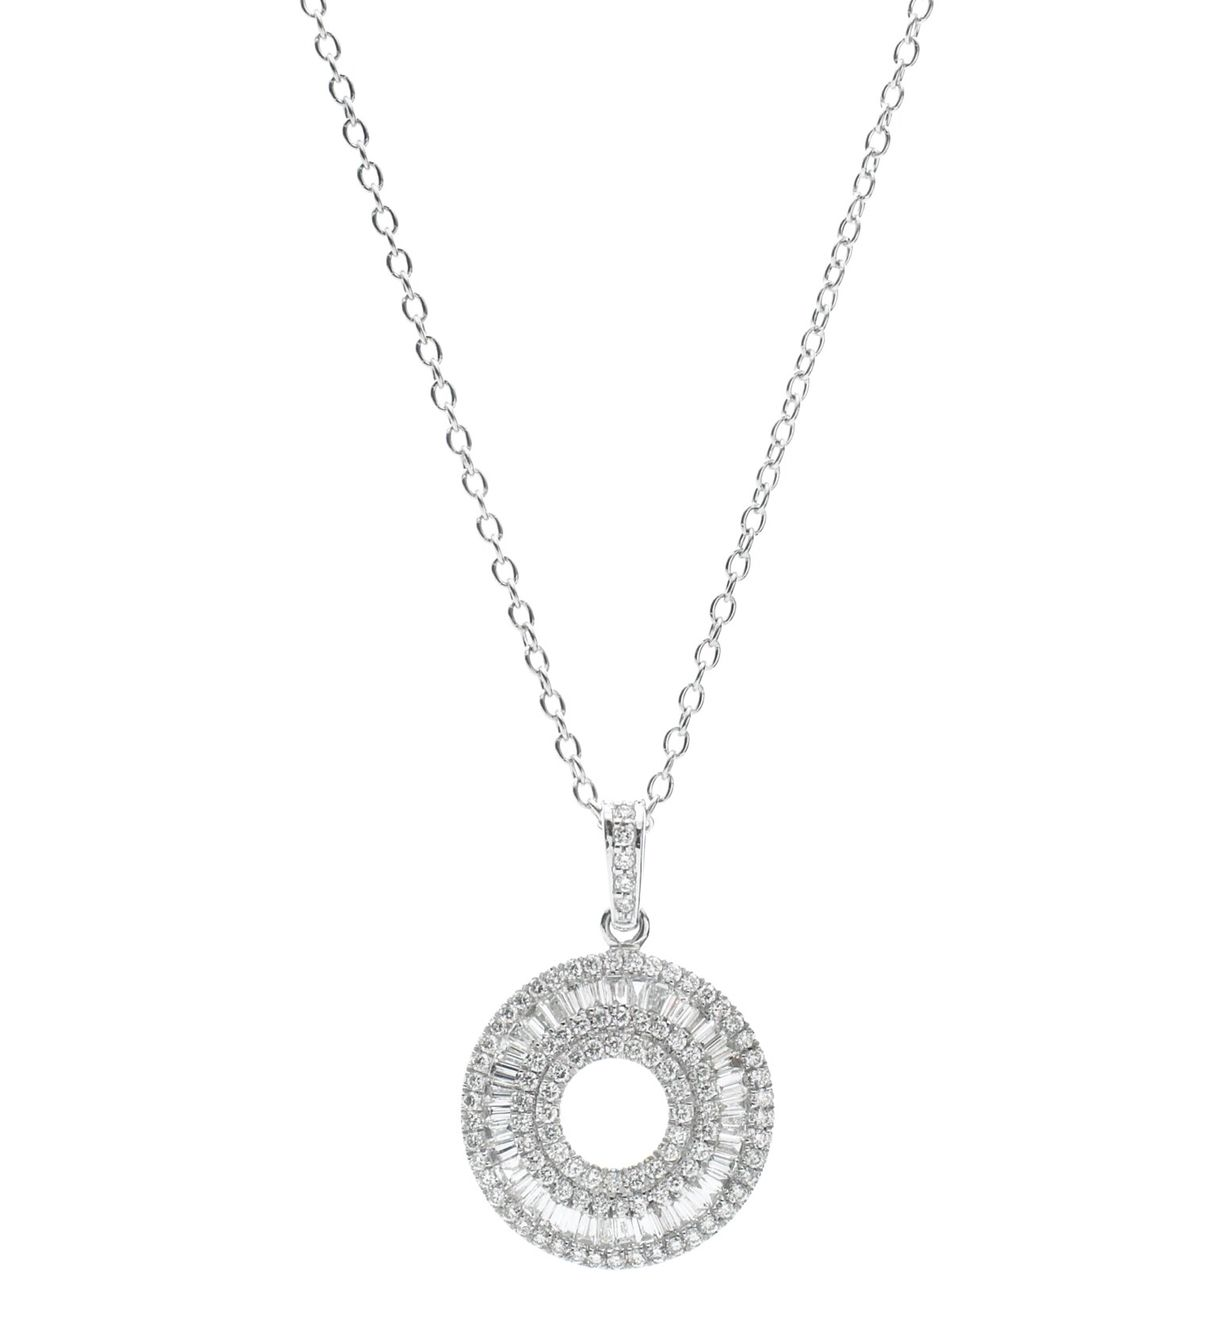 Rosendorff circle of love diamond pendant rosendorff pinterest rosendorff circle of love diamond pendant aloadofball Images